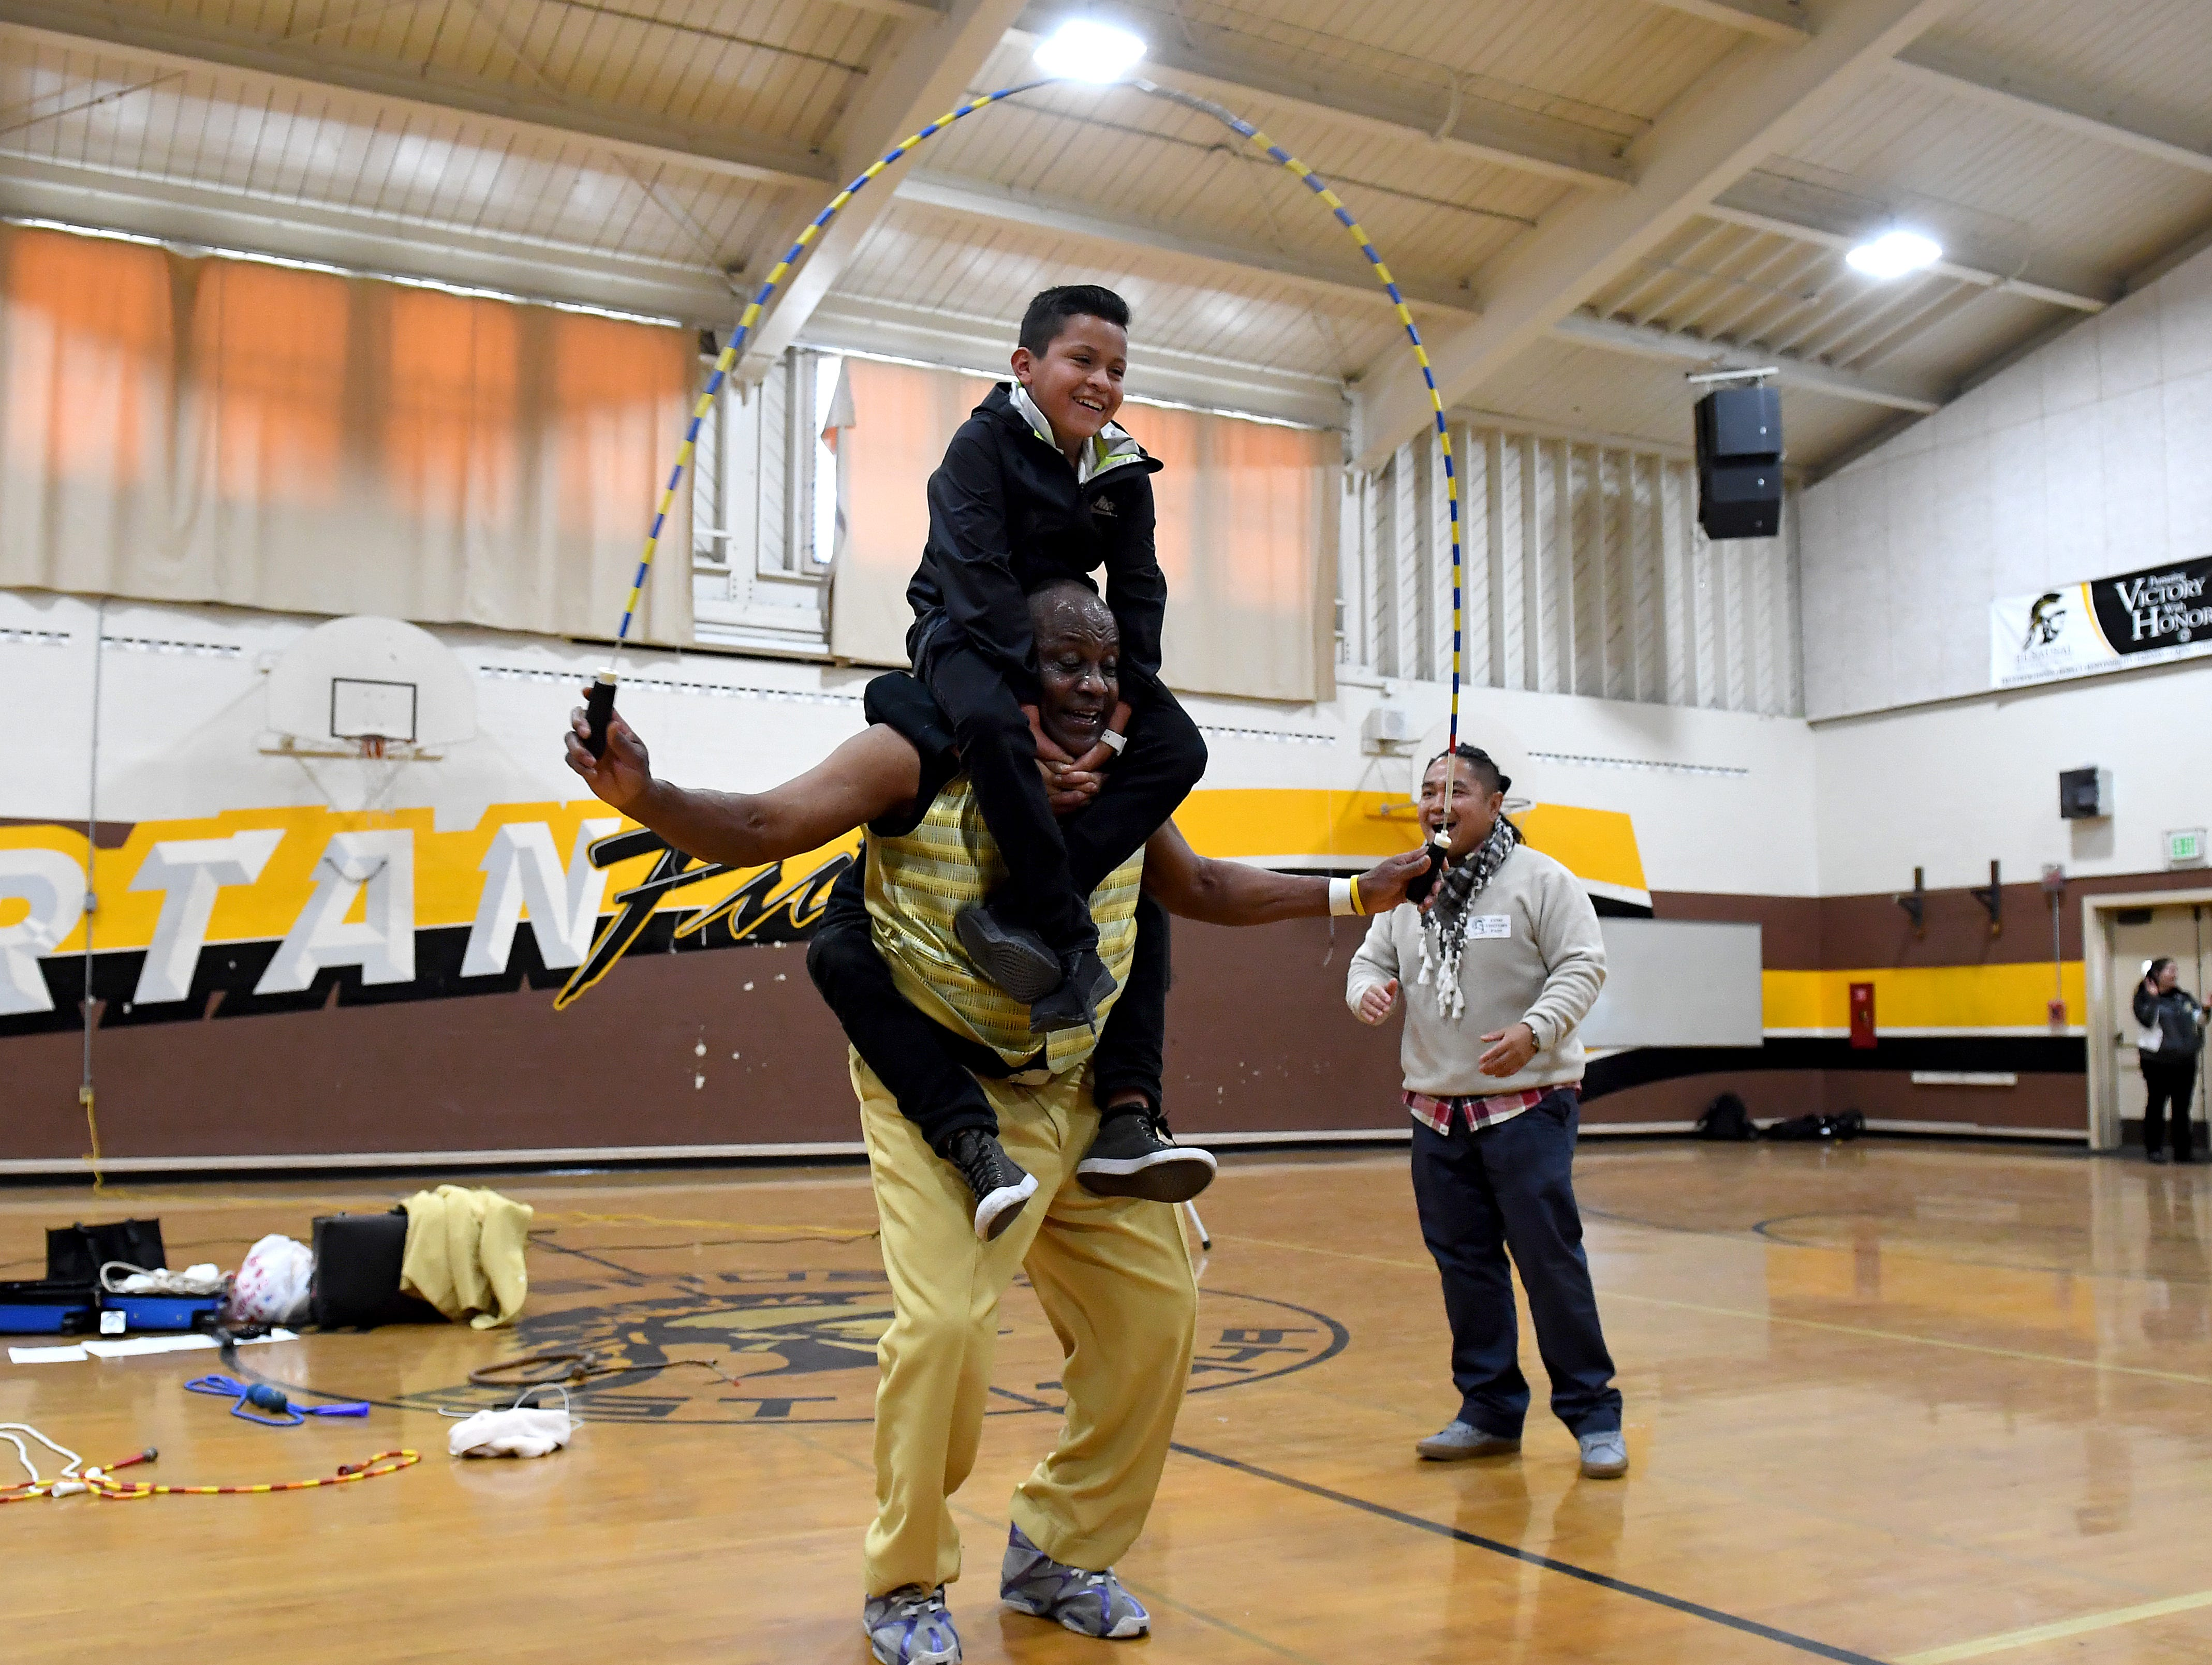 James Thompson performs with a student from El Sausal Middle School on his shoulders during a visit to his alma mater Feb. 21, 2019.